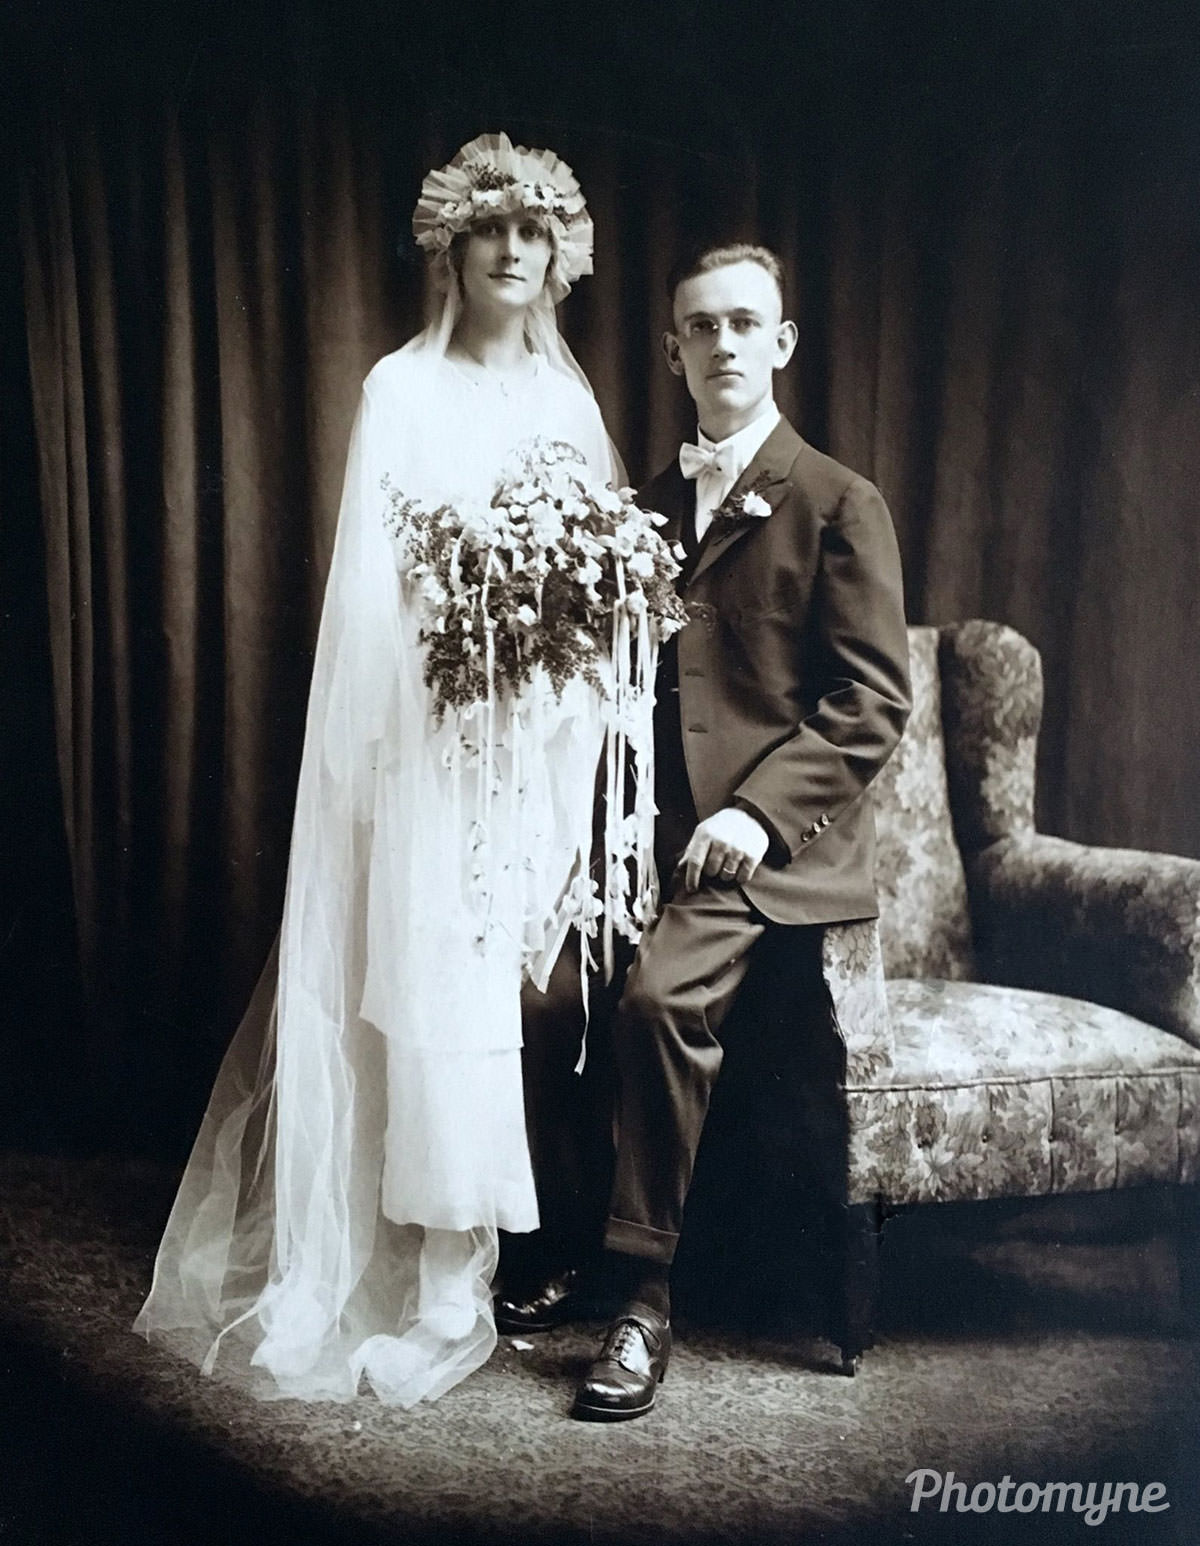 My grandparents, August and Mae (Nehrentz) Lohr; wedding date is July 5, 1919 in Cleveland, Ohio. My grandmother and I spent a lot of time together as I was growing up. My grandfather died in 1952, so I never knew him.